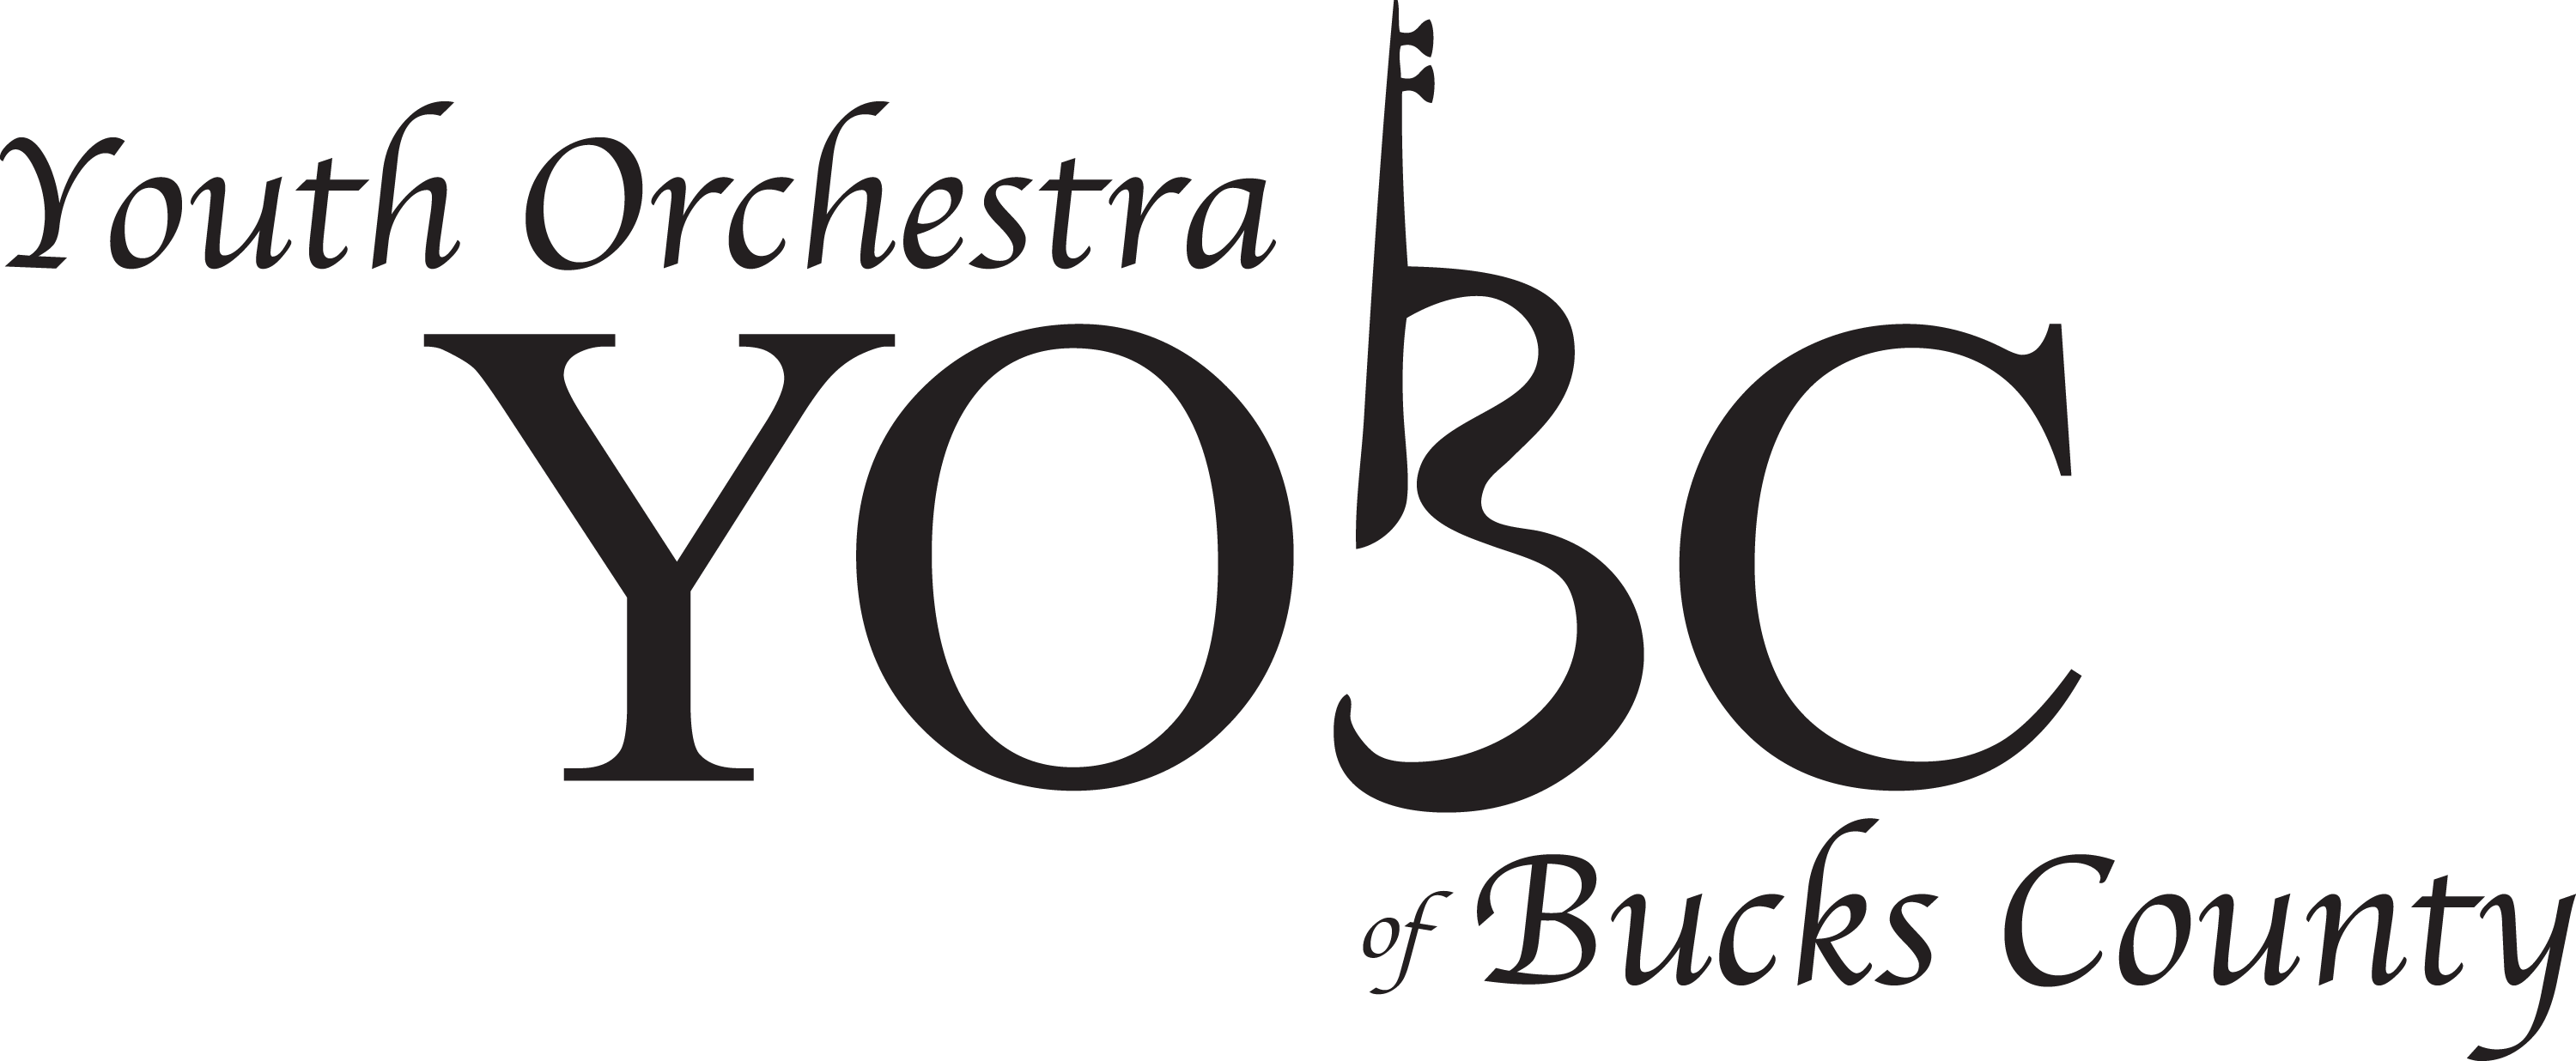 Logo of Youth Orchestra of Bucks County